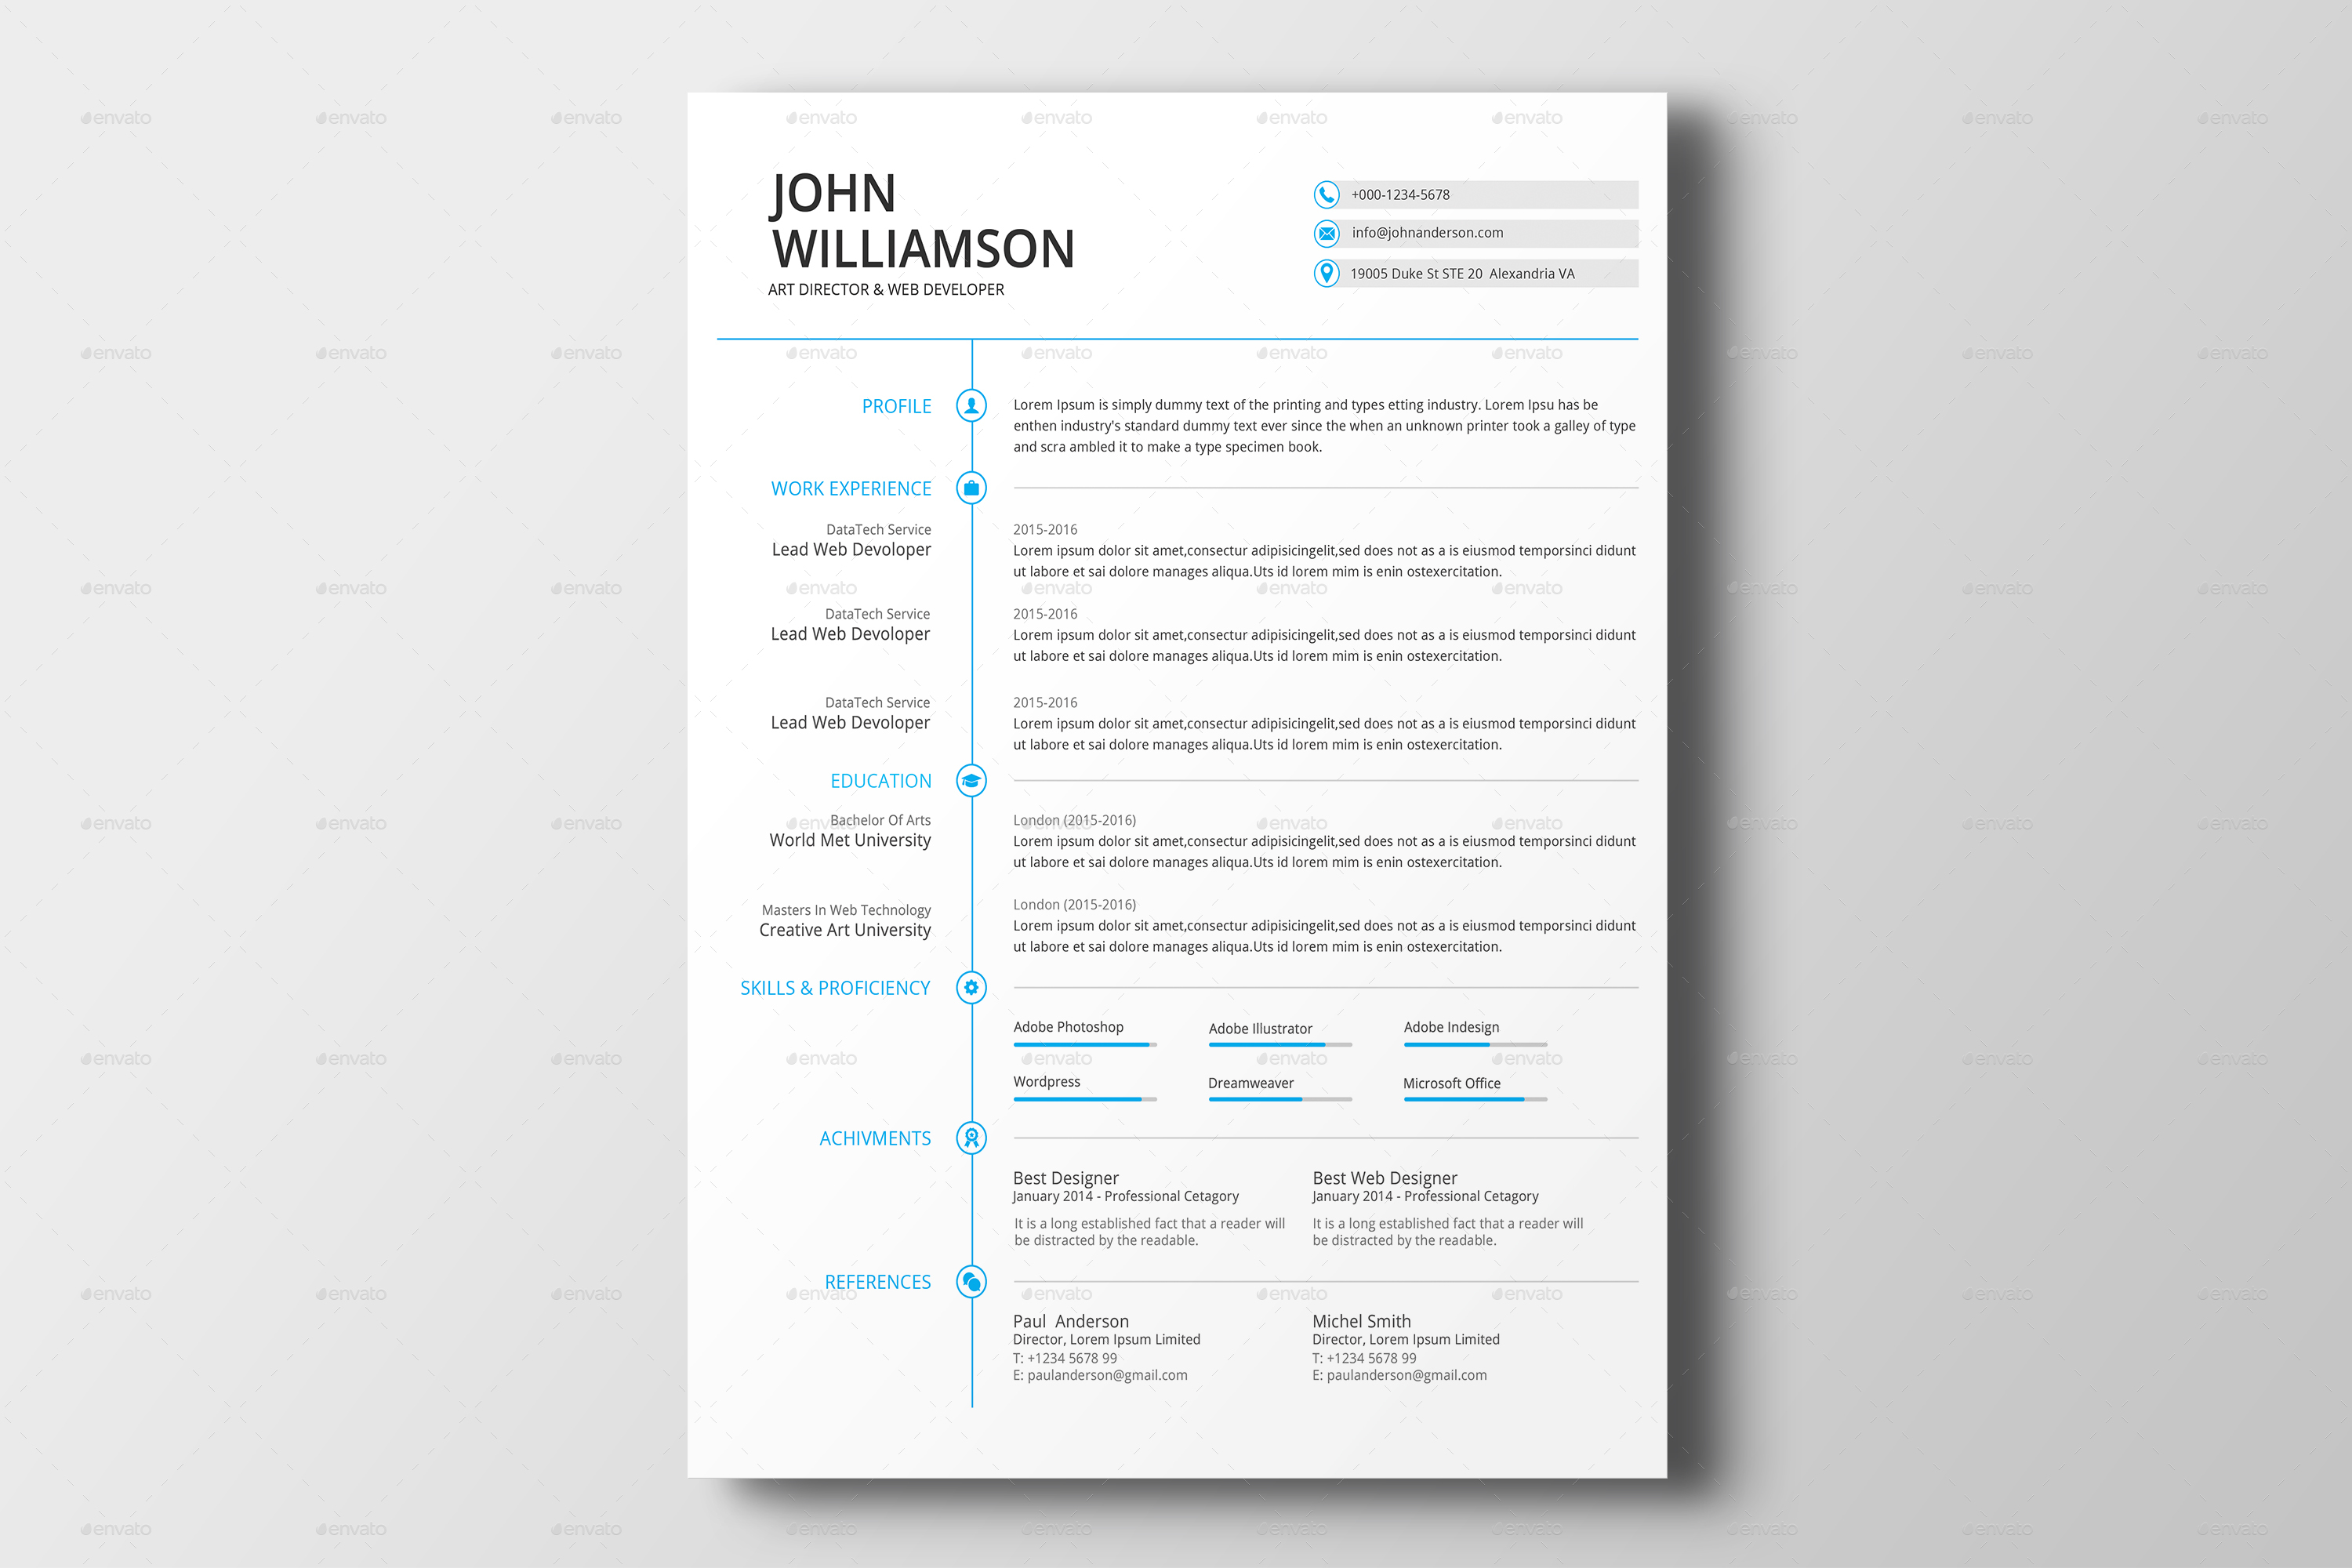 Charming 1 Year Experience Resume Format For Manual Testing Small 1.25 Button Template Flat 12 Month Timeline Template 16 Birthday Invitation Templates Youthful 17 Worst Things To Say On Your Resume Business Insider Green18 Year Old Job Resume Resume \u0026 Cover Letter By DesignsTemplate | GraphicRiver